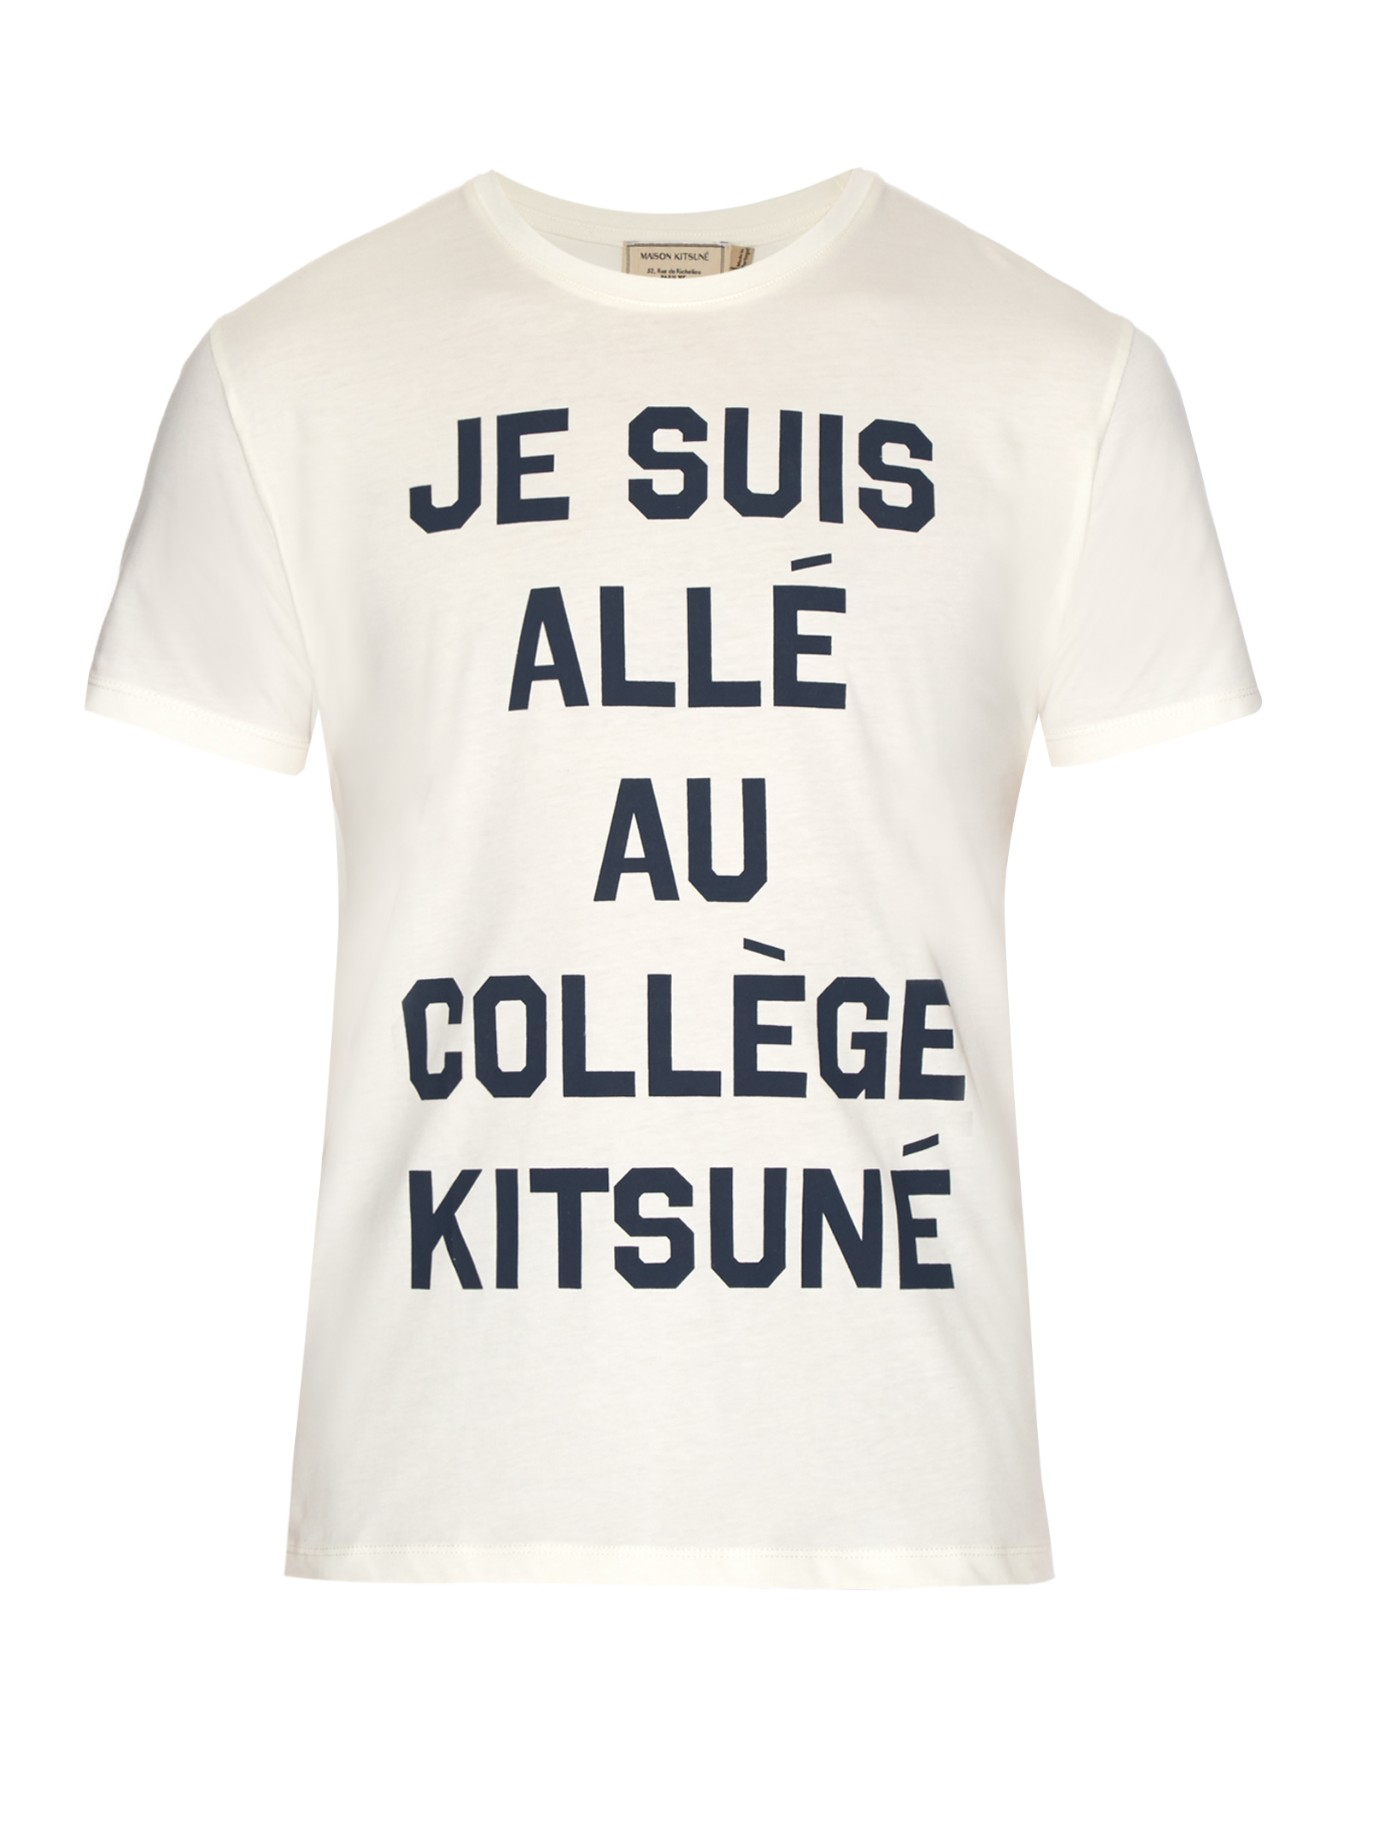 maison kitsun je suis all cotton jersey t shirt in white for men lyst. Black Bedroom Furniture Sets. Home Design Ideas